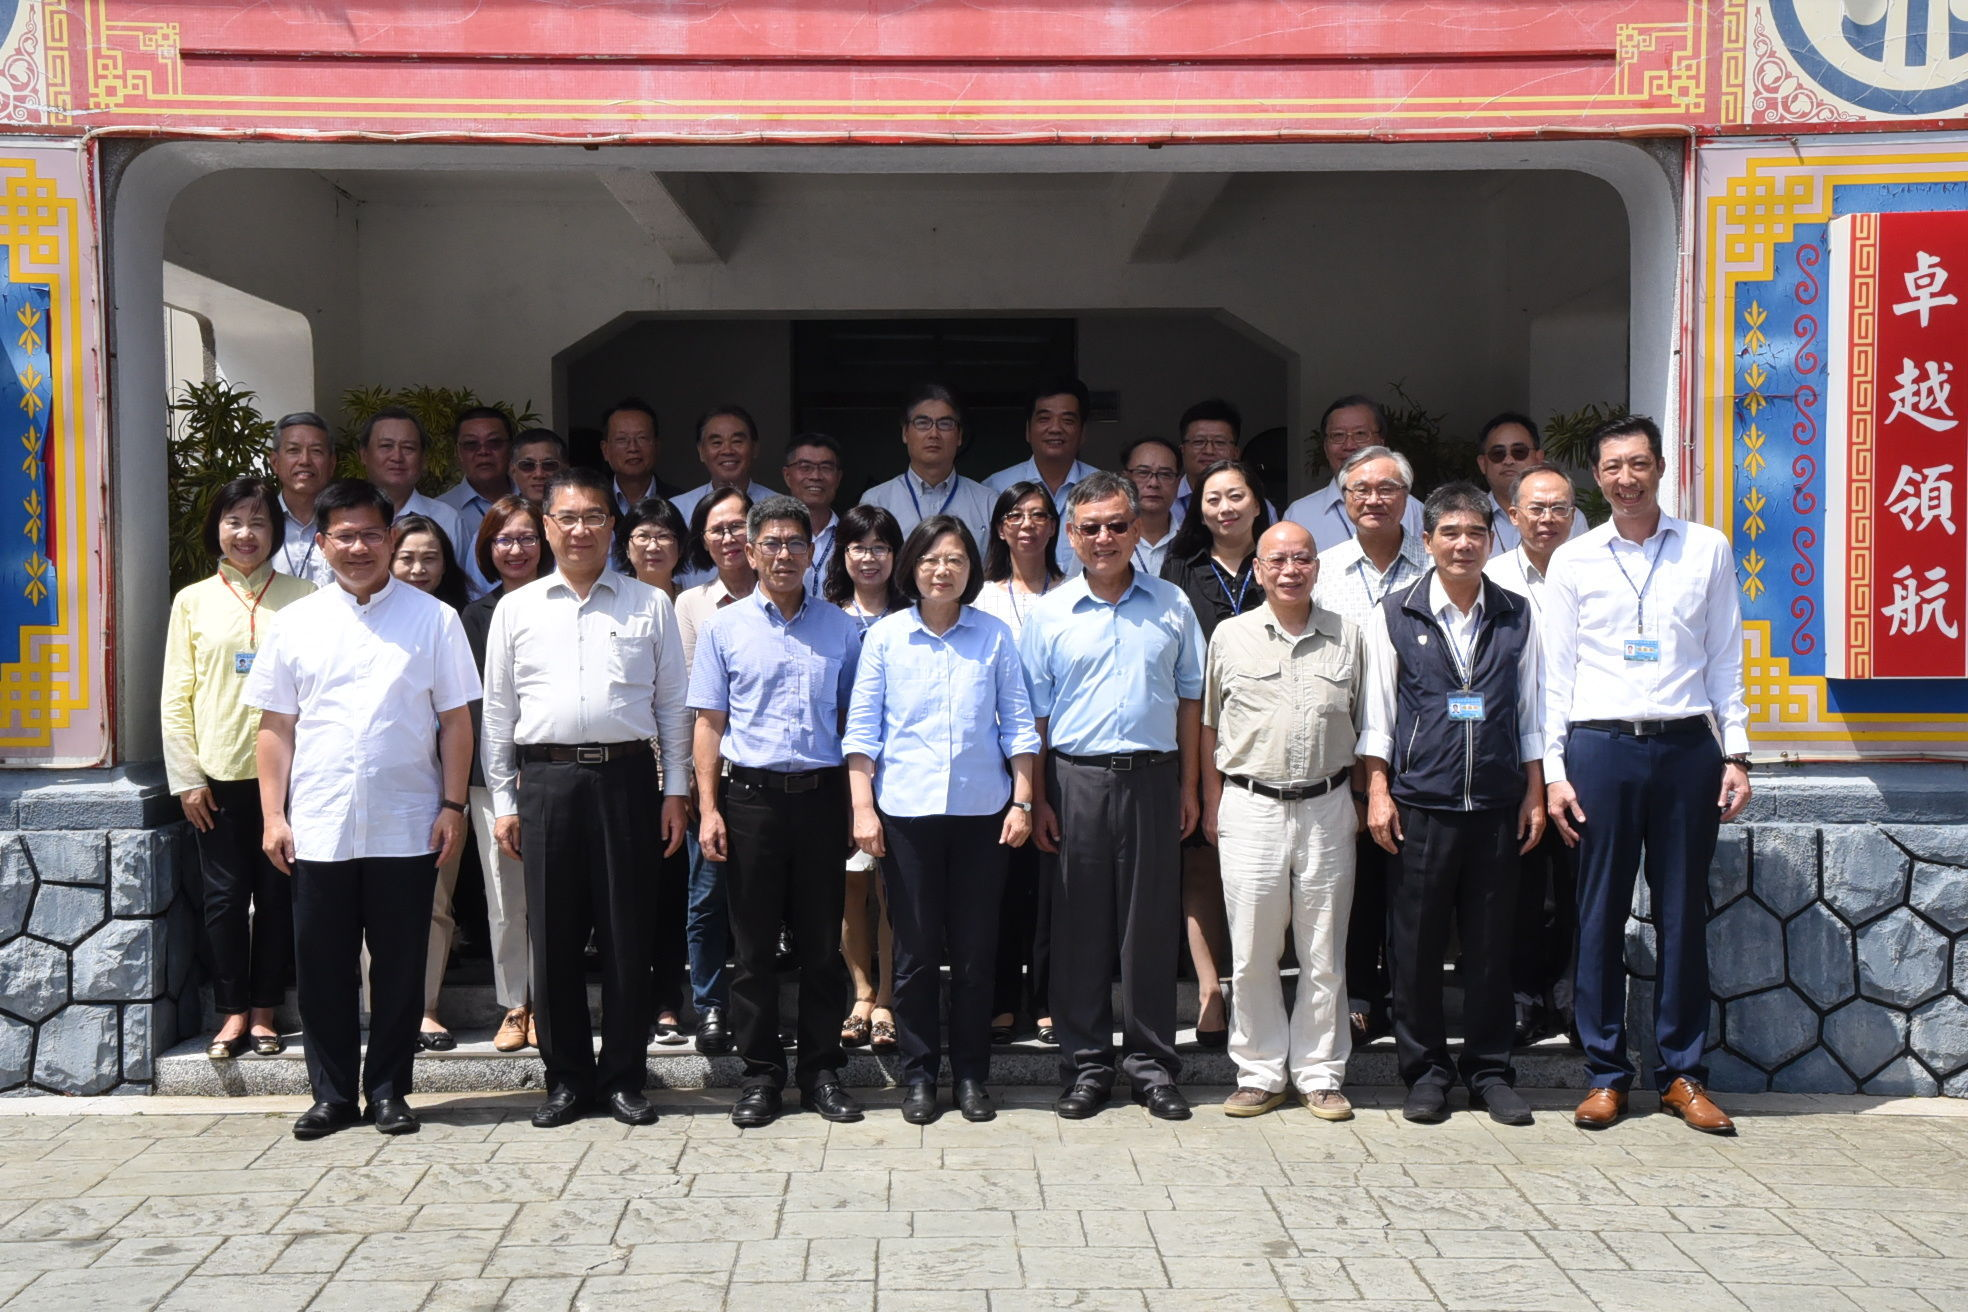 Group photo of President Tsai Ing-Wen and the staff of Penghu County Government